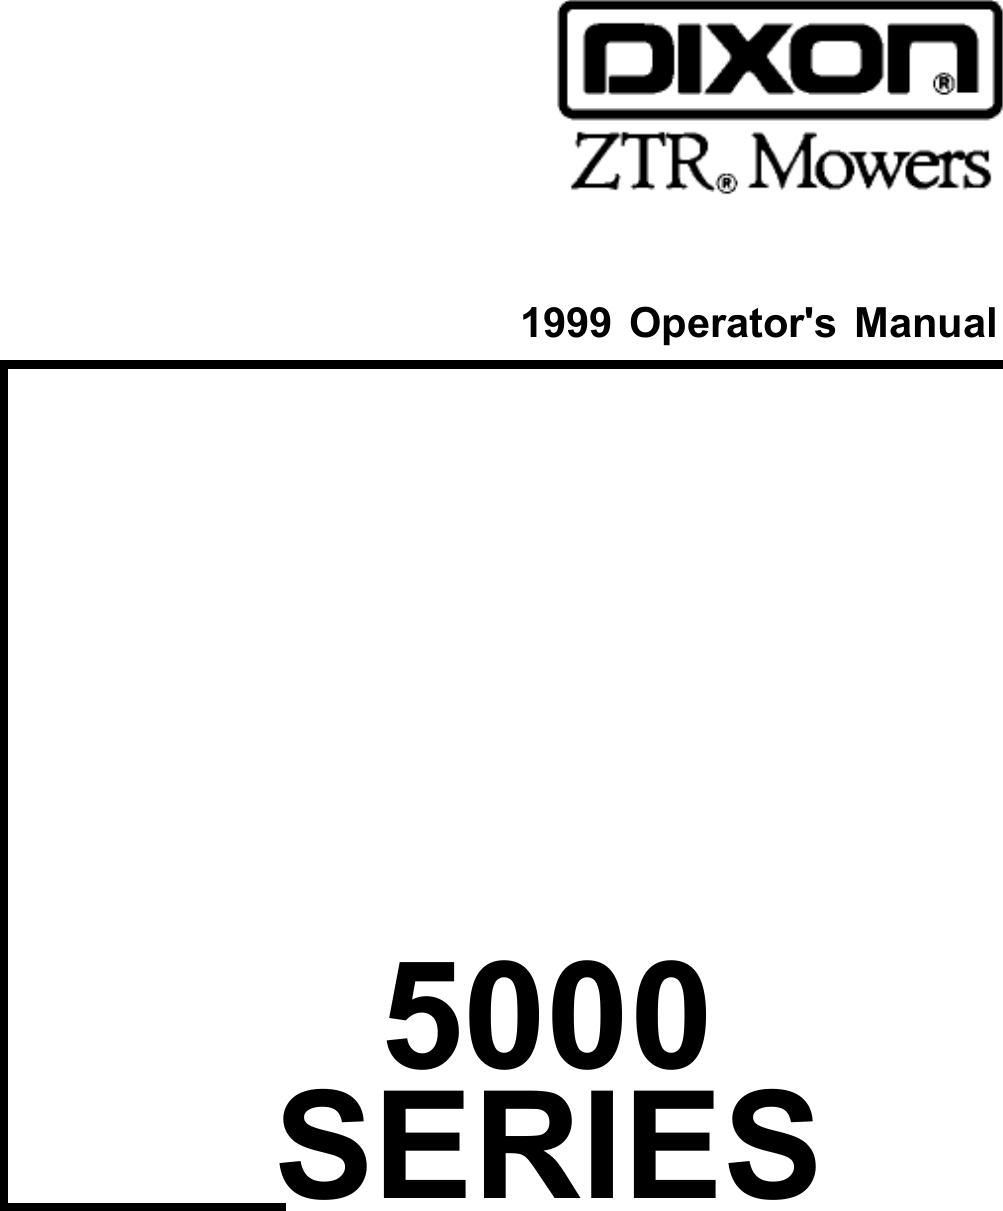 Dixon Ztr 5017 Users Manual OM, 5000 SERIES, 5017, 5020